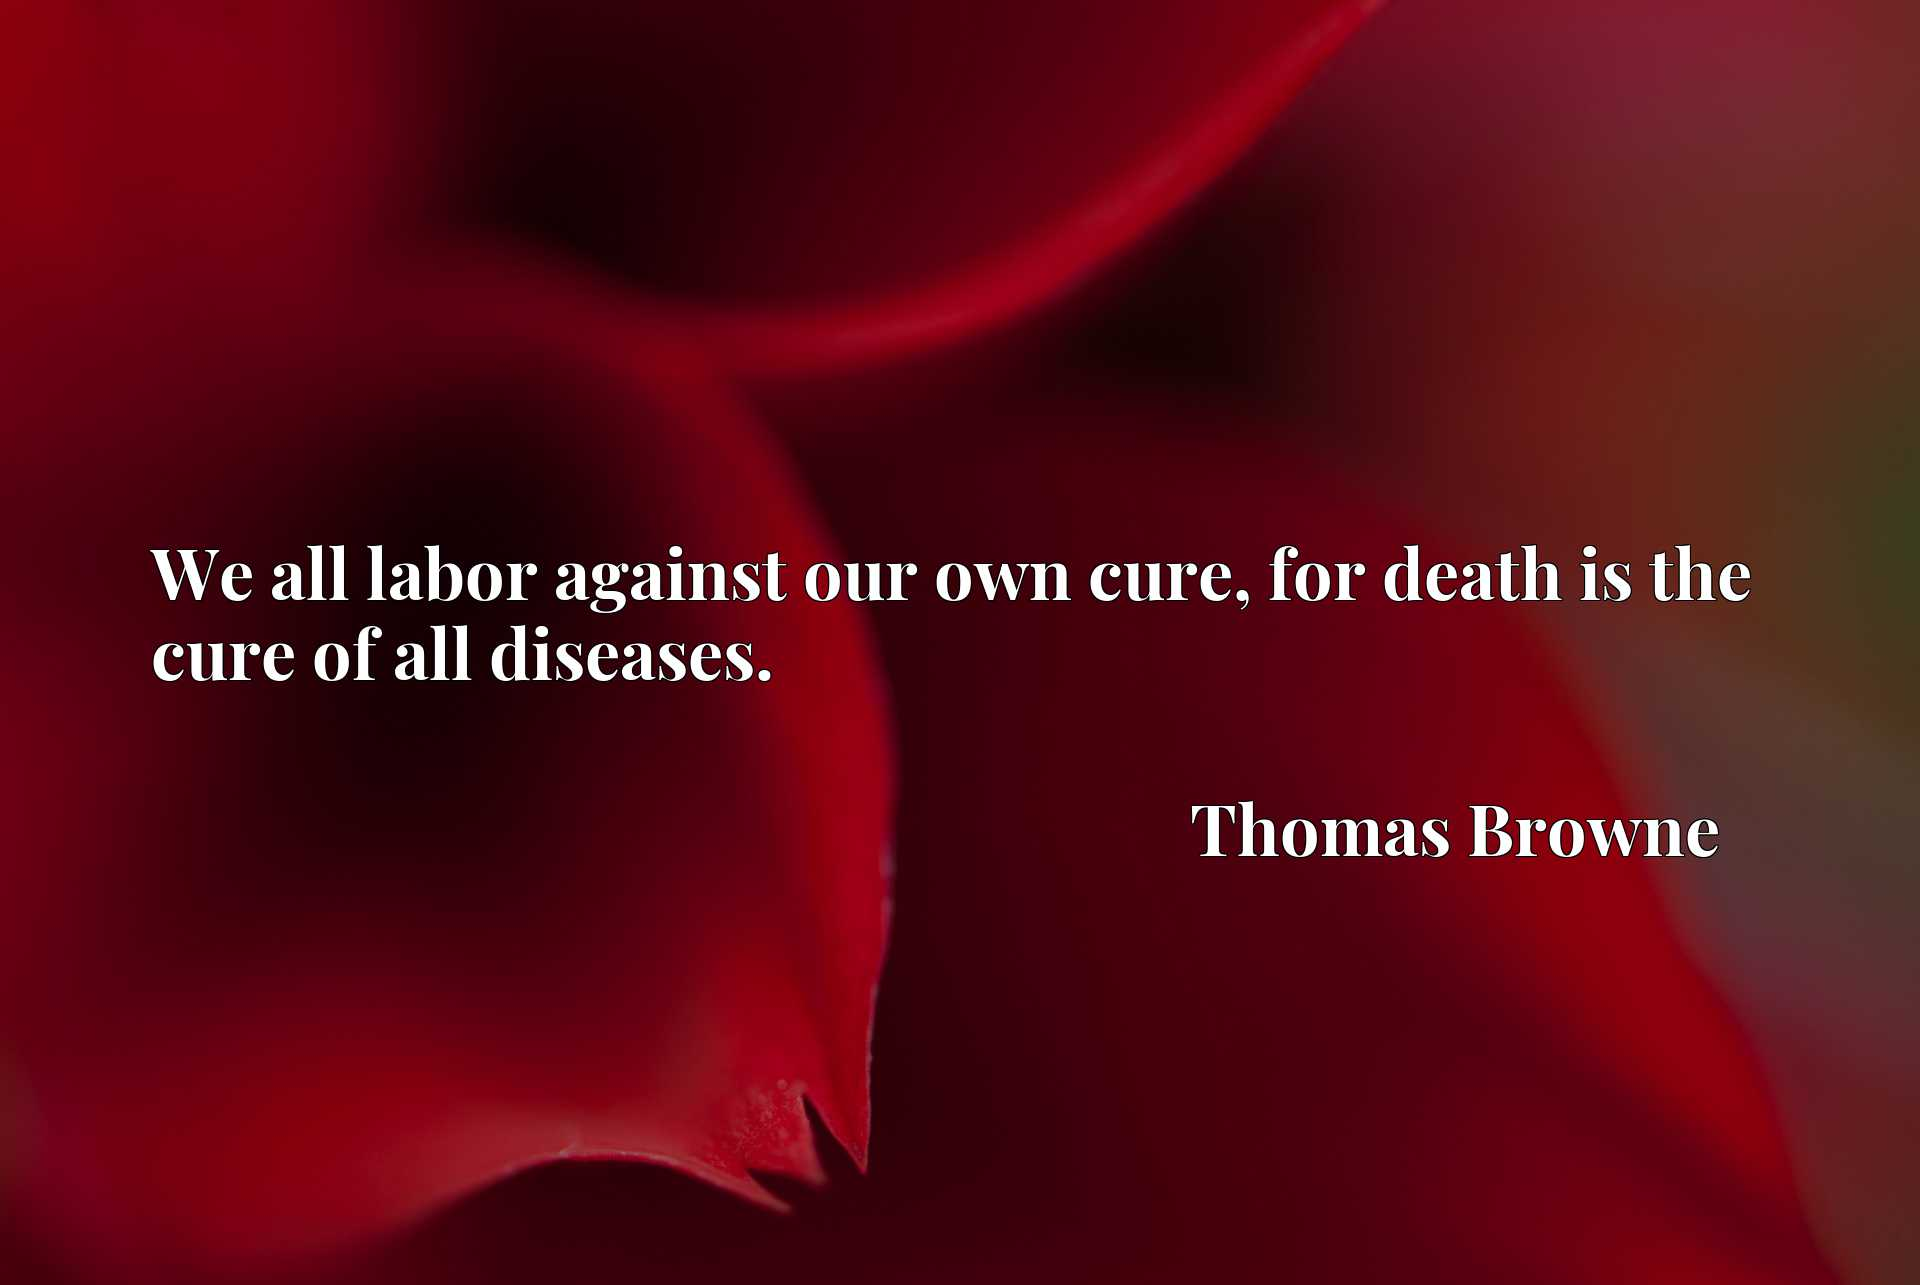 We all labor against our own cure, for death is the cure of all diseases.